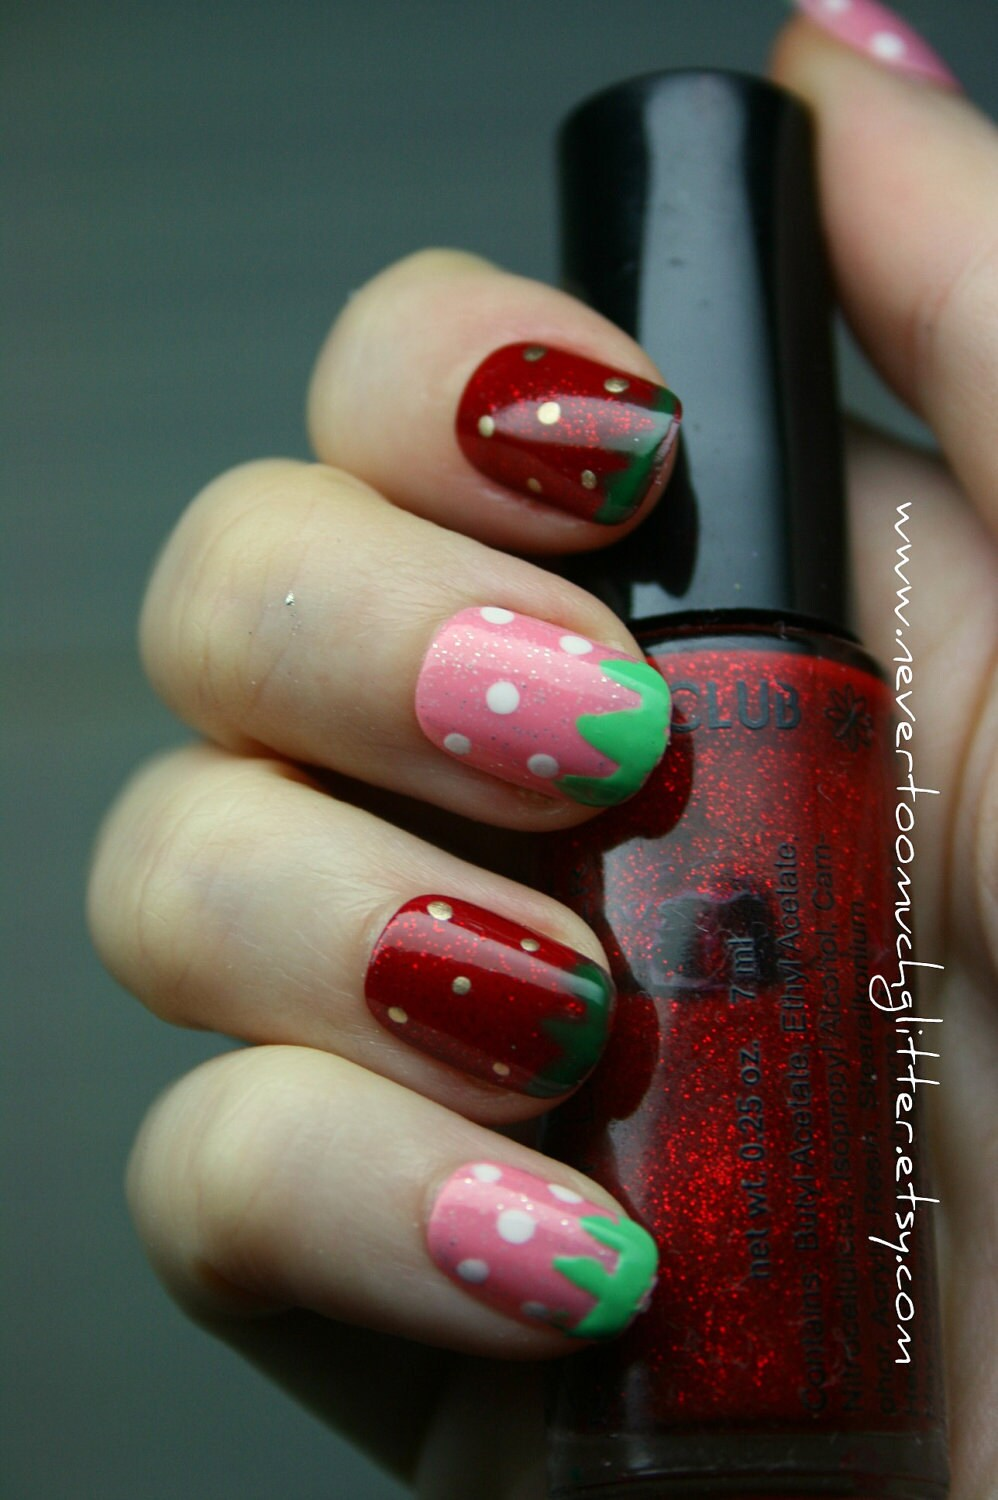 Sweet Strawberries Press On Nails 2 Sets of Cute Kawaii